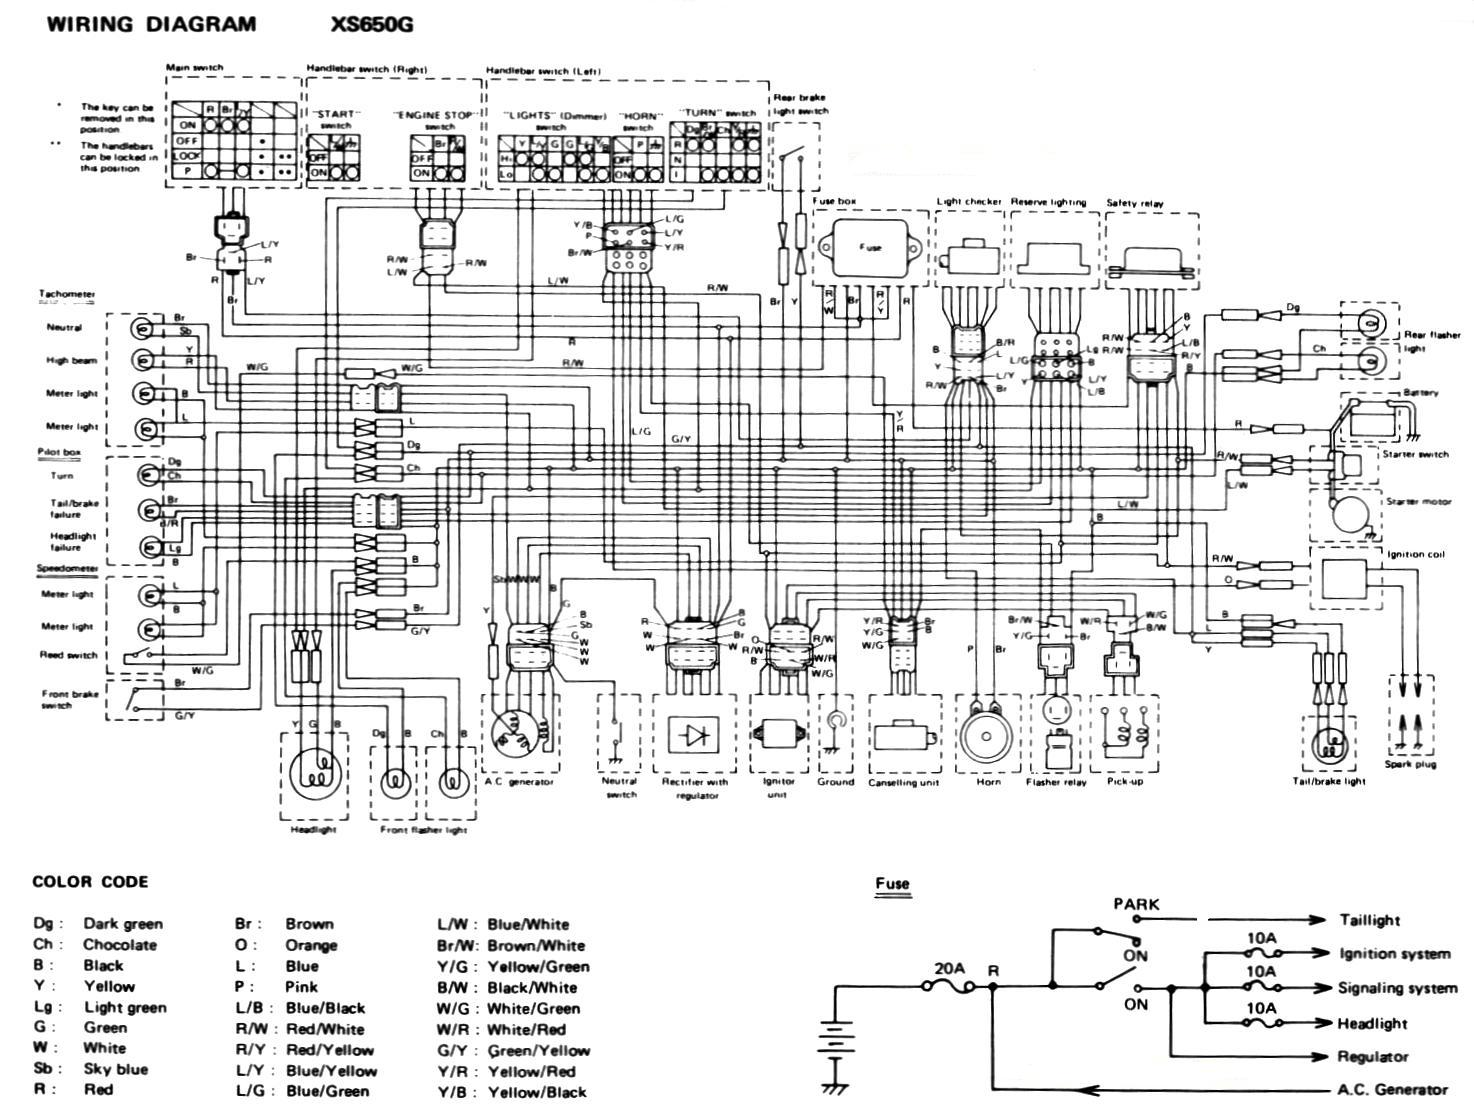 80XS650G wiring diagrams 1983 yamaha xs650 wiring diagram at bayanpartner.co